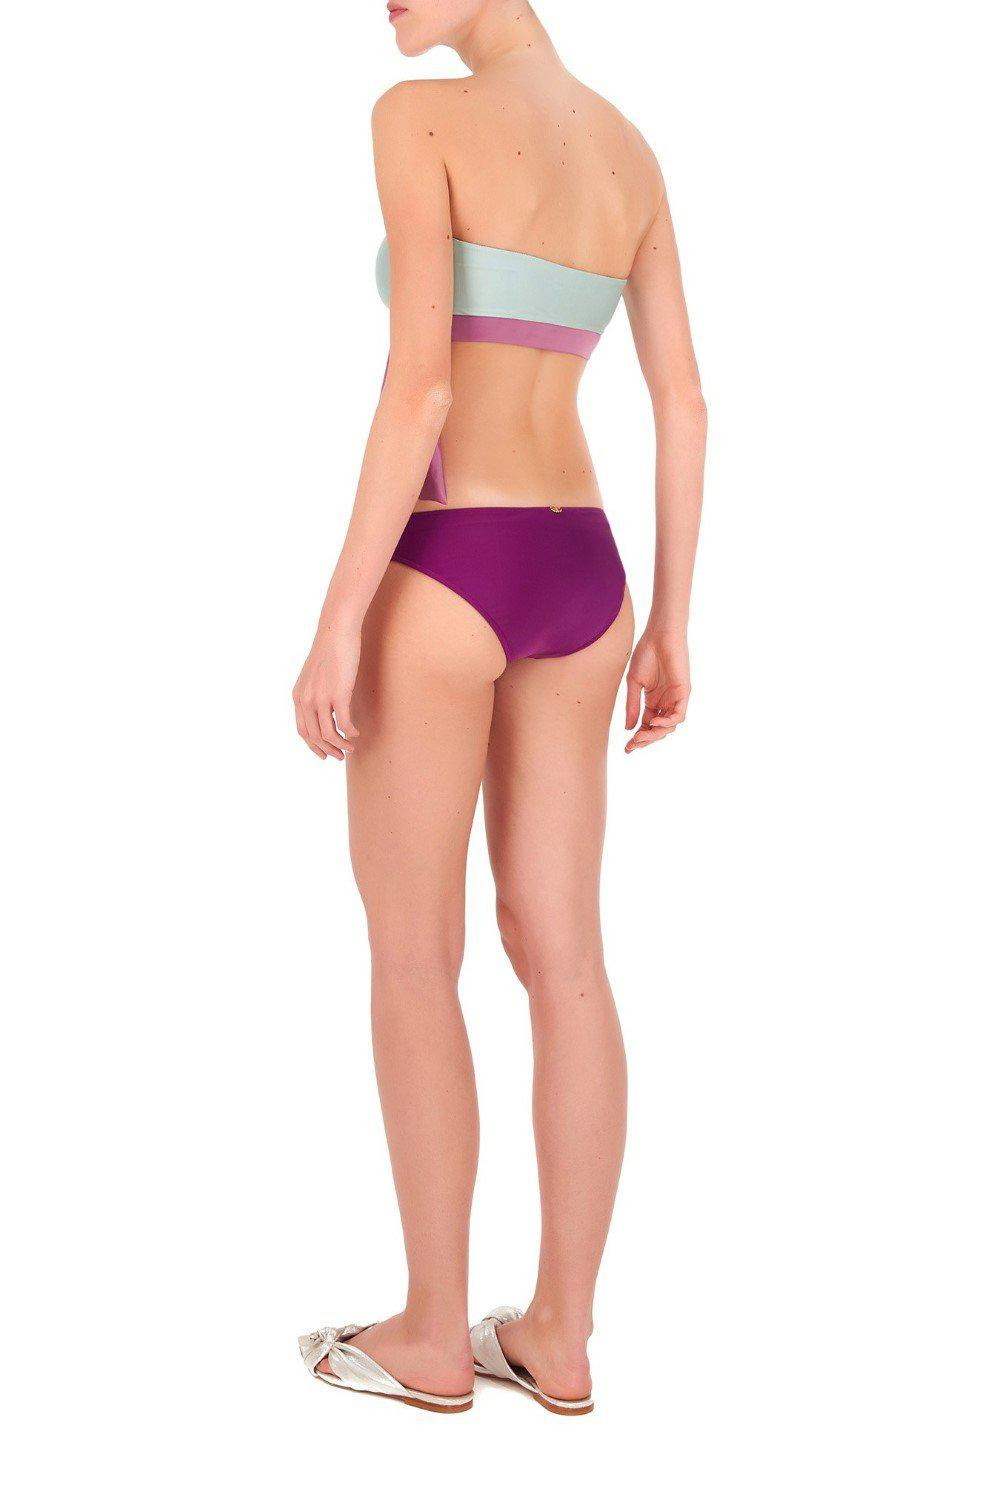 Cinque Terre Strapless Bikini with Knot Detail 2